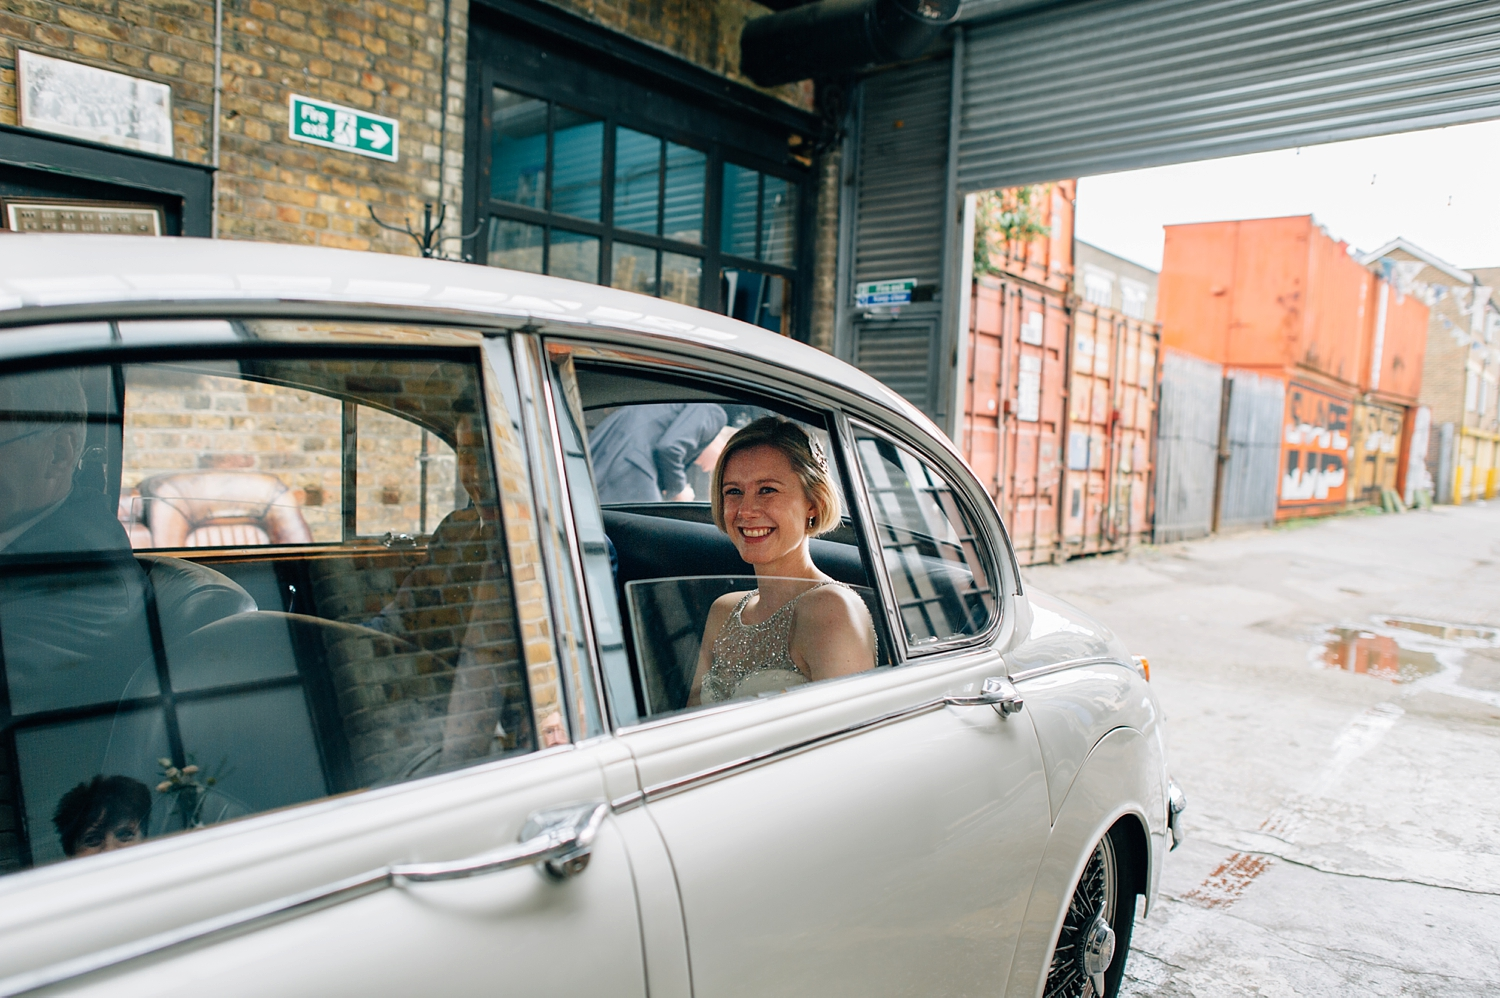 0101-lisa-devine-alternative-wedding-photography-london-hackney-dalston-london-photography-townhall-hotel.JPG